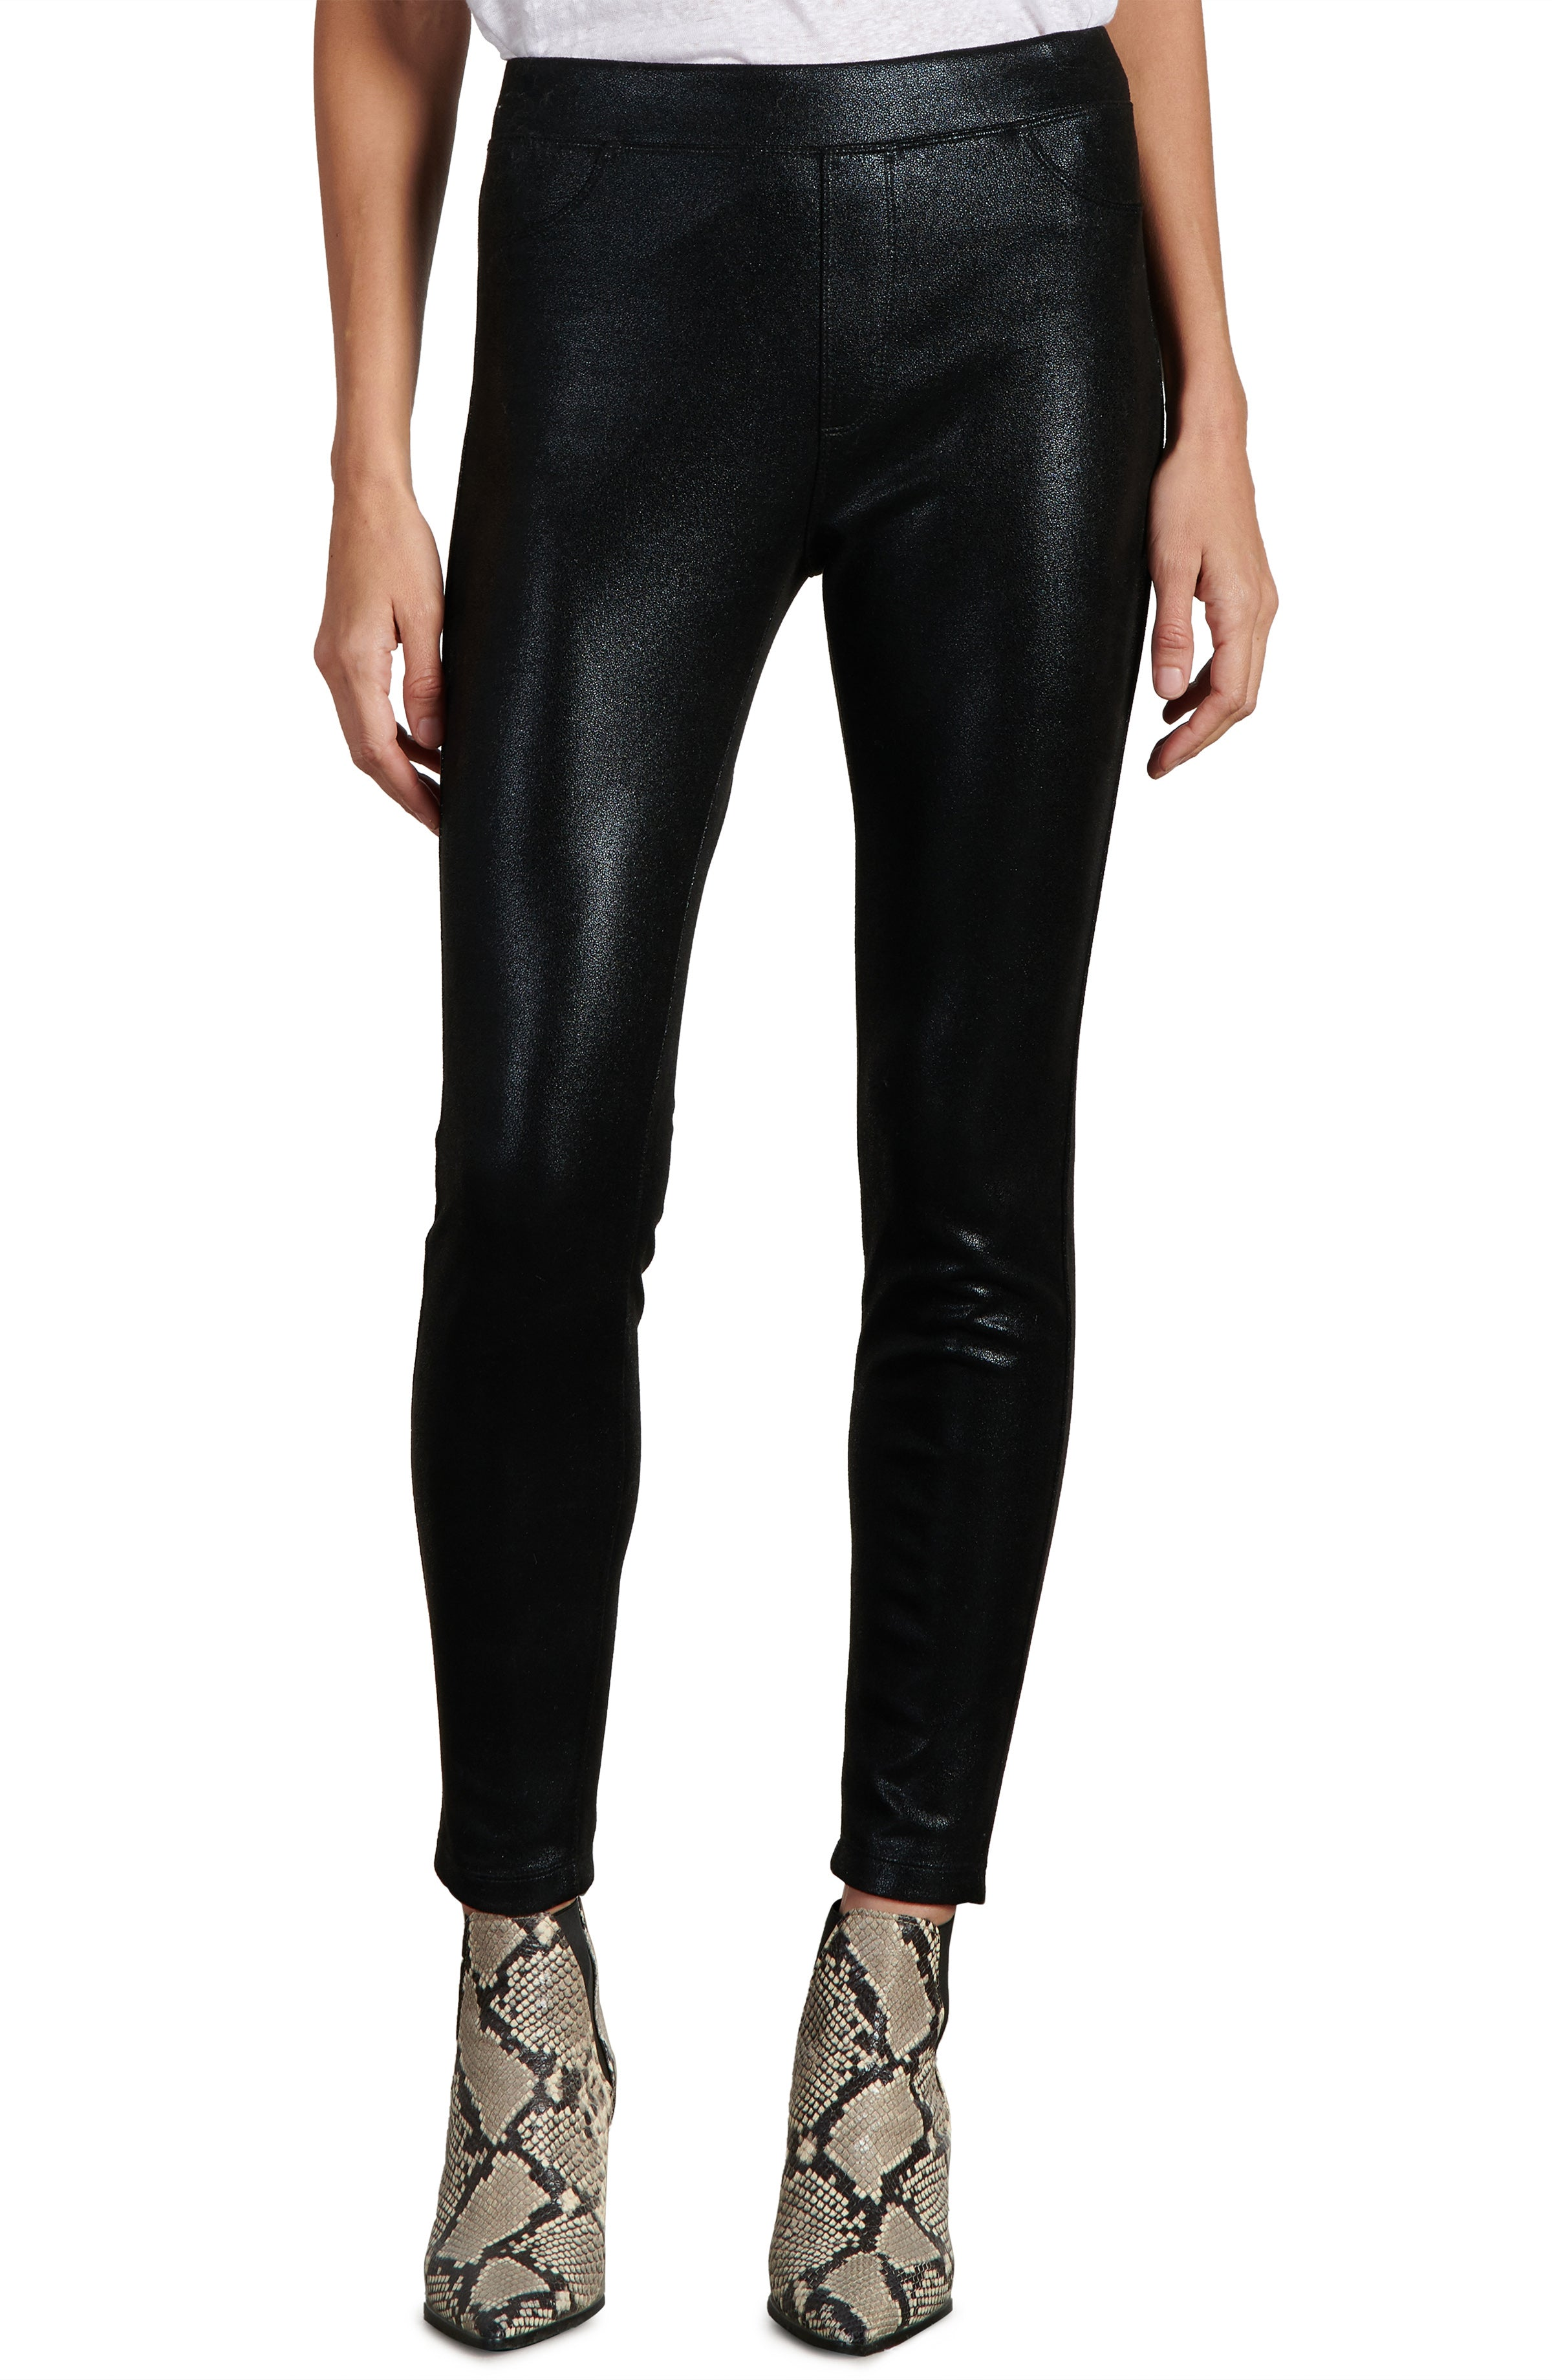 Liquid Black Runway Legging